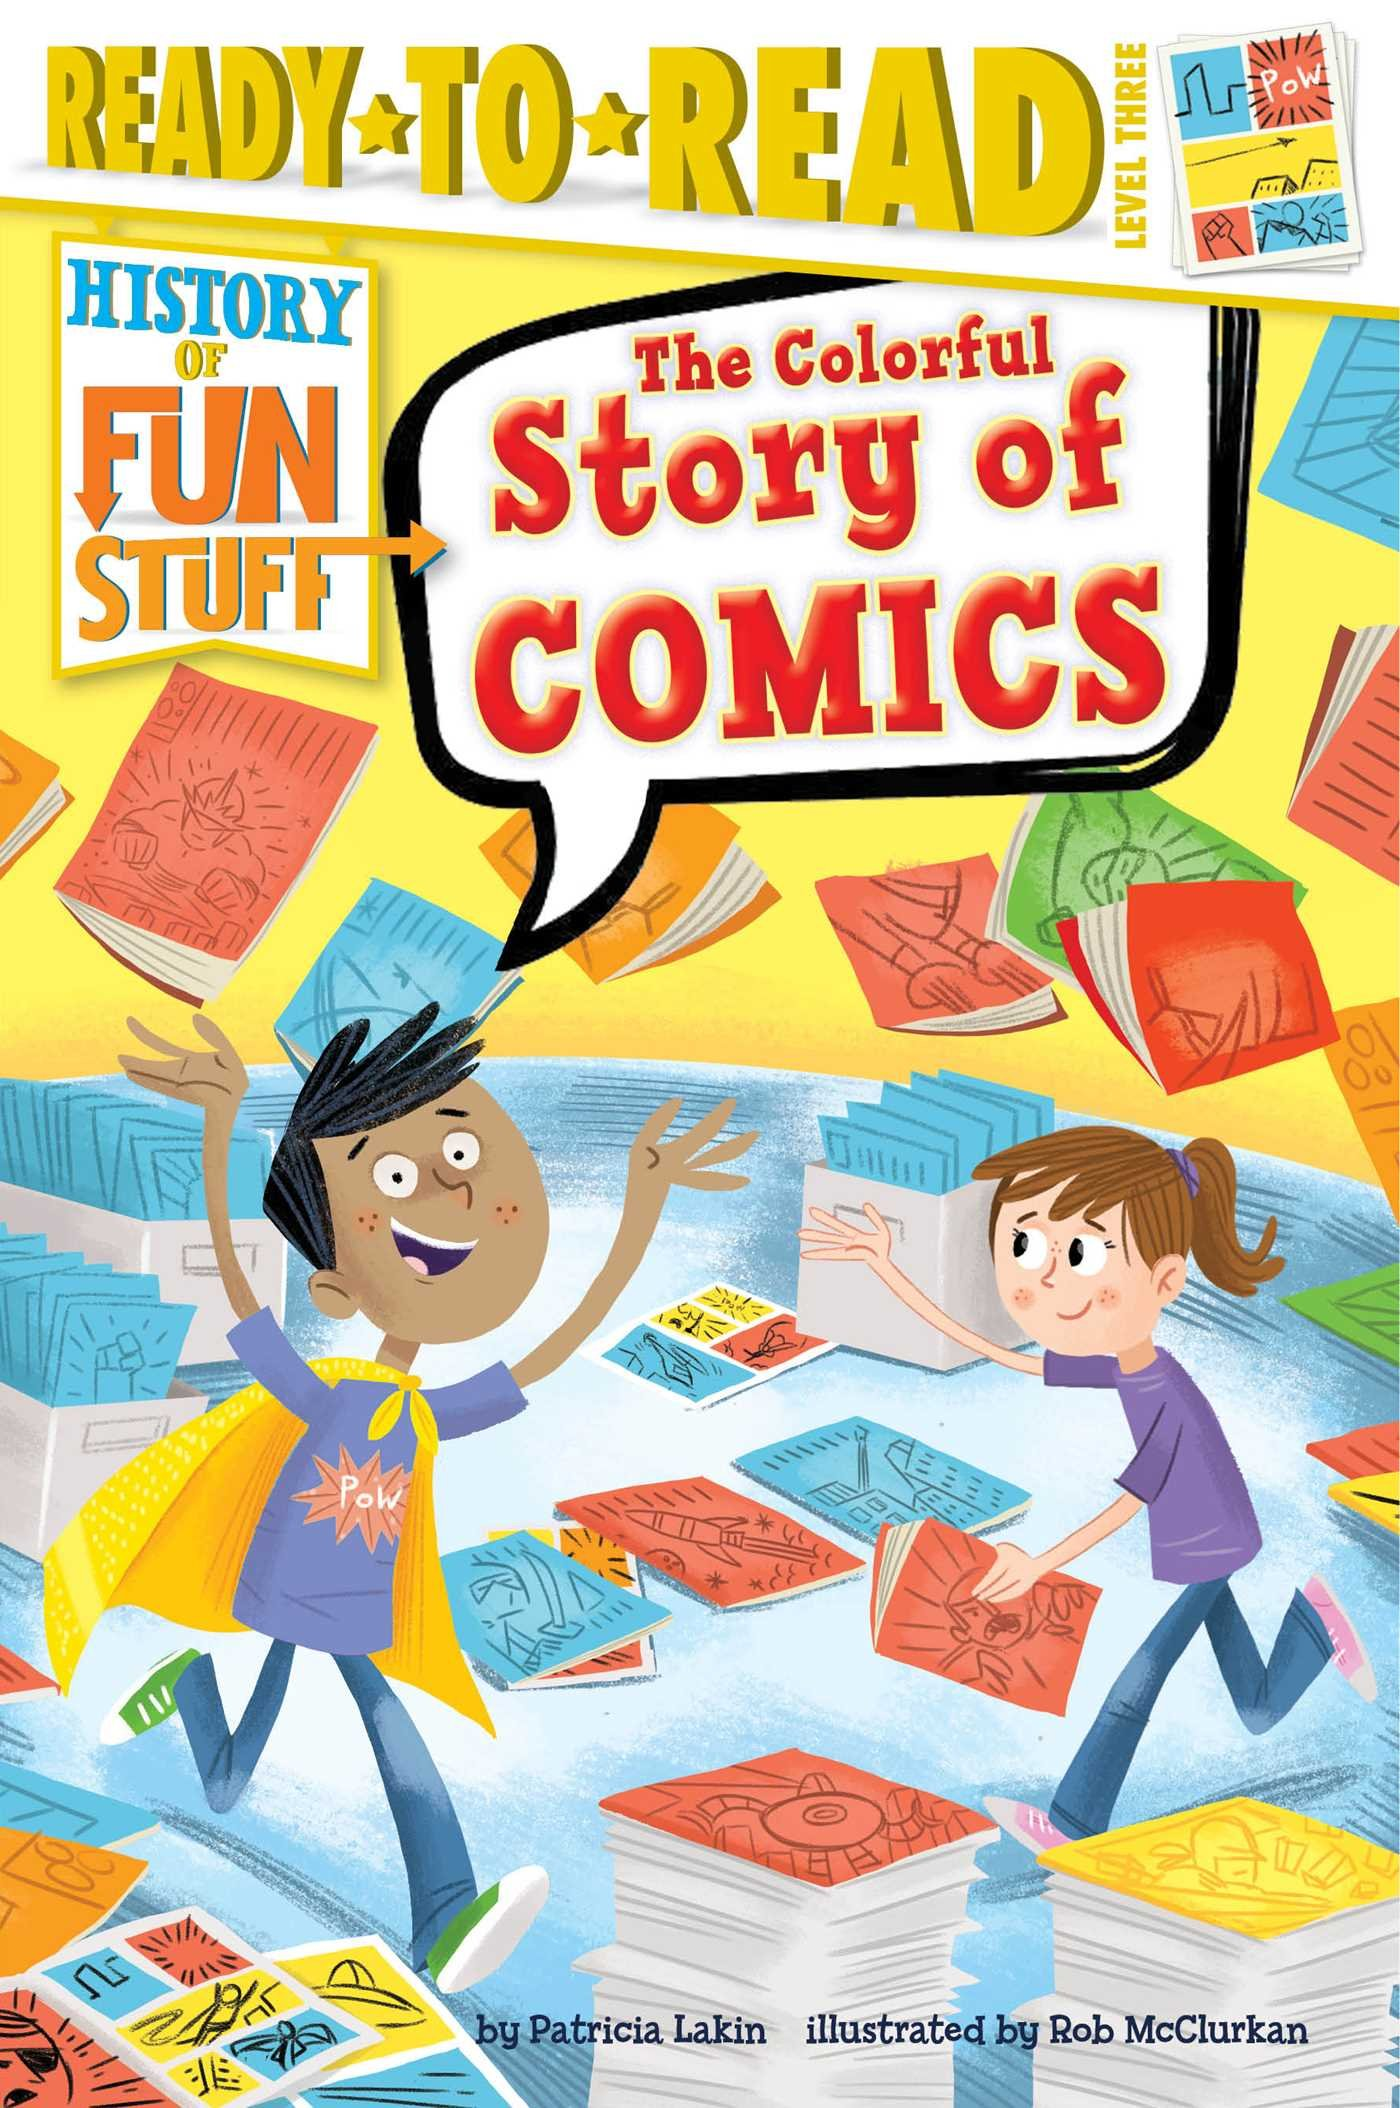 The Colorful Story of Comics (History of Fun Stuff)